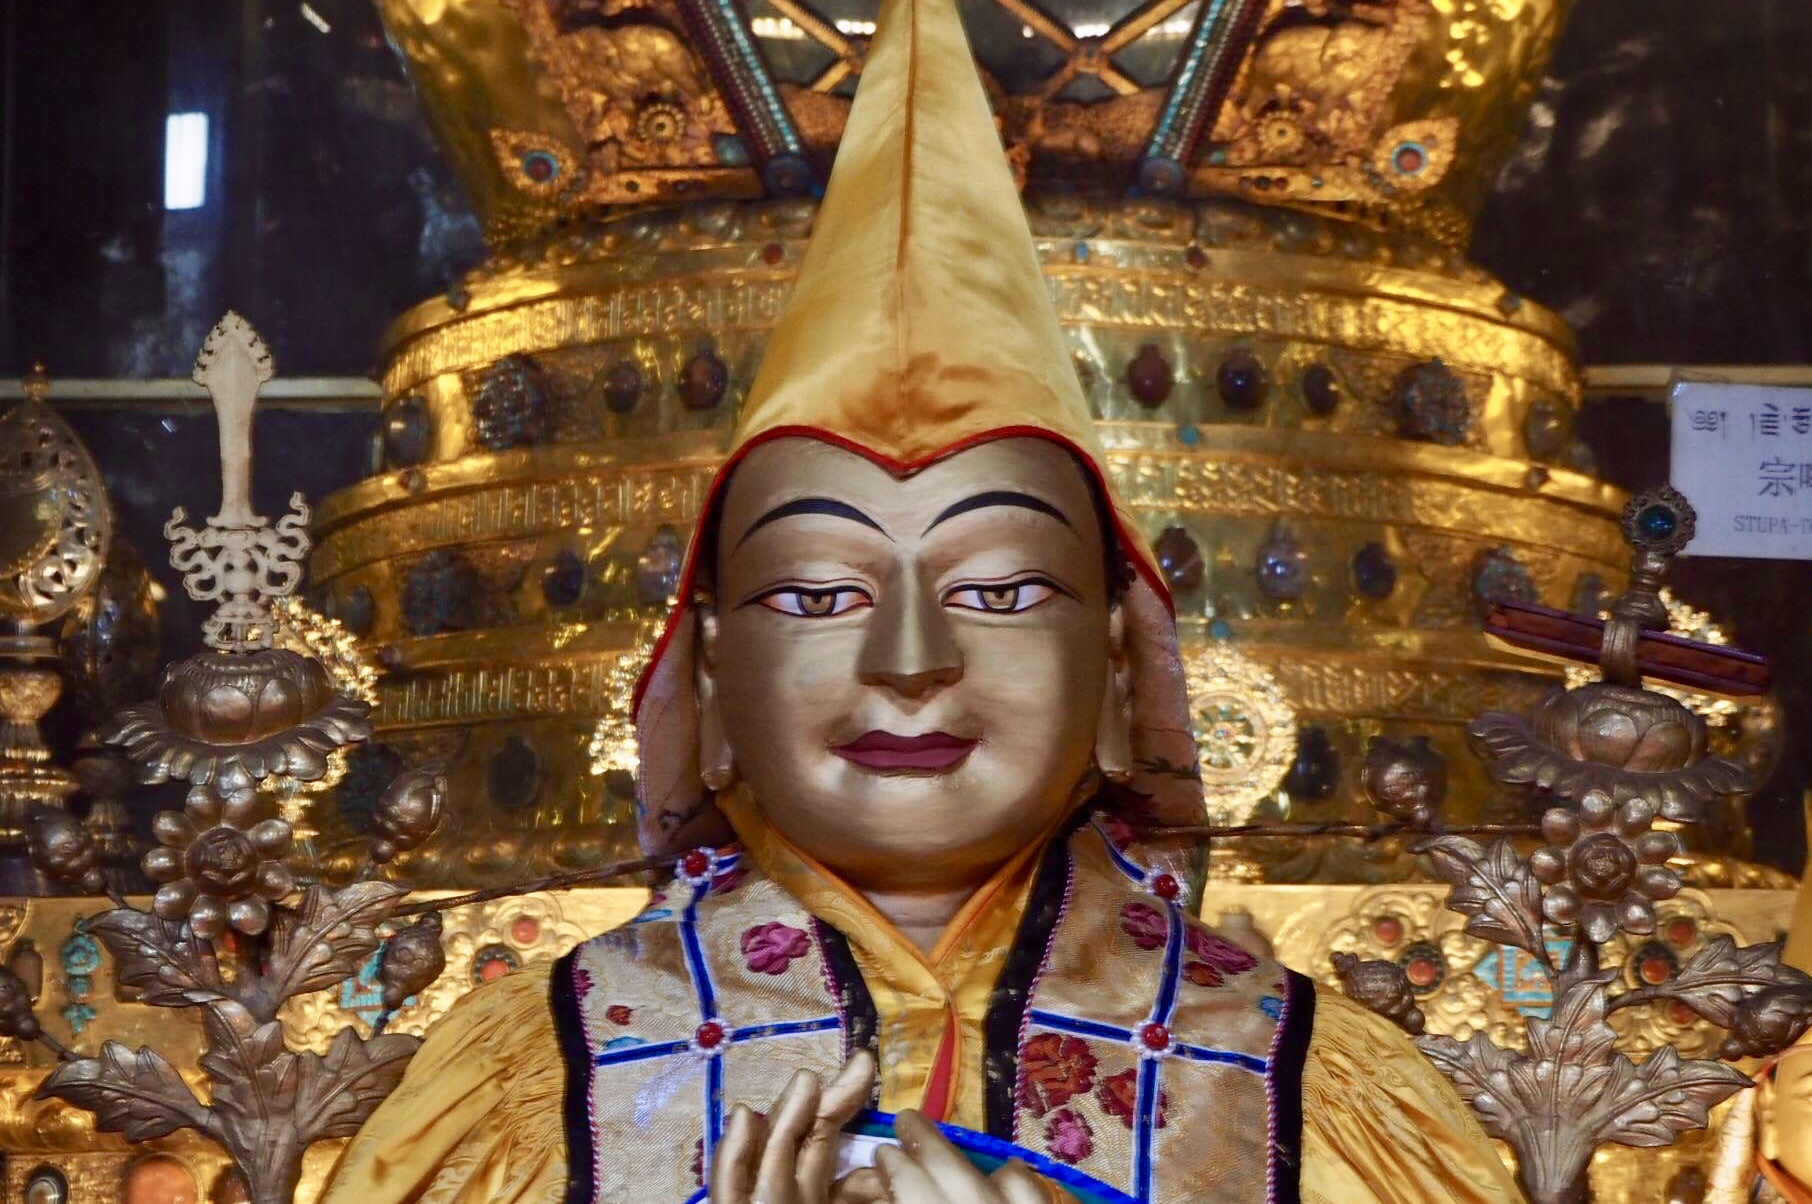 Statue of Lama Tsongkhapa atGanden Monastery, Tibet, in front of the stupa containing his relics.(Photo Ven Tenzin Tsultrim)